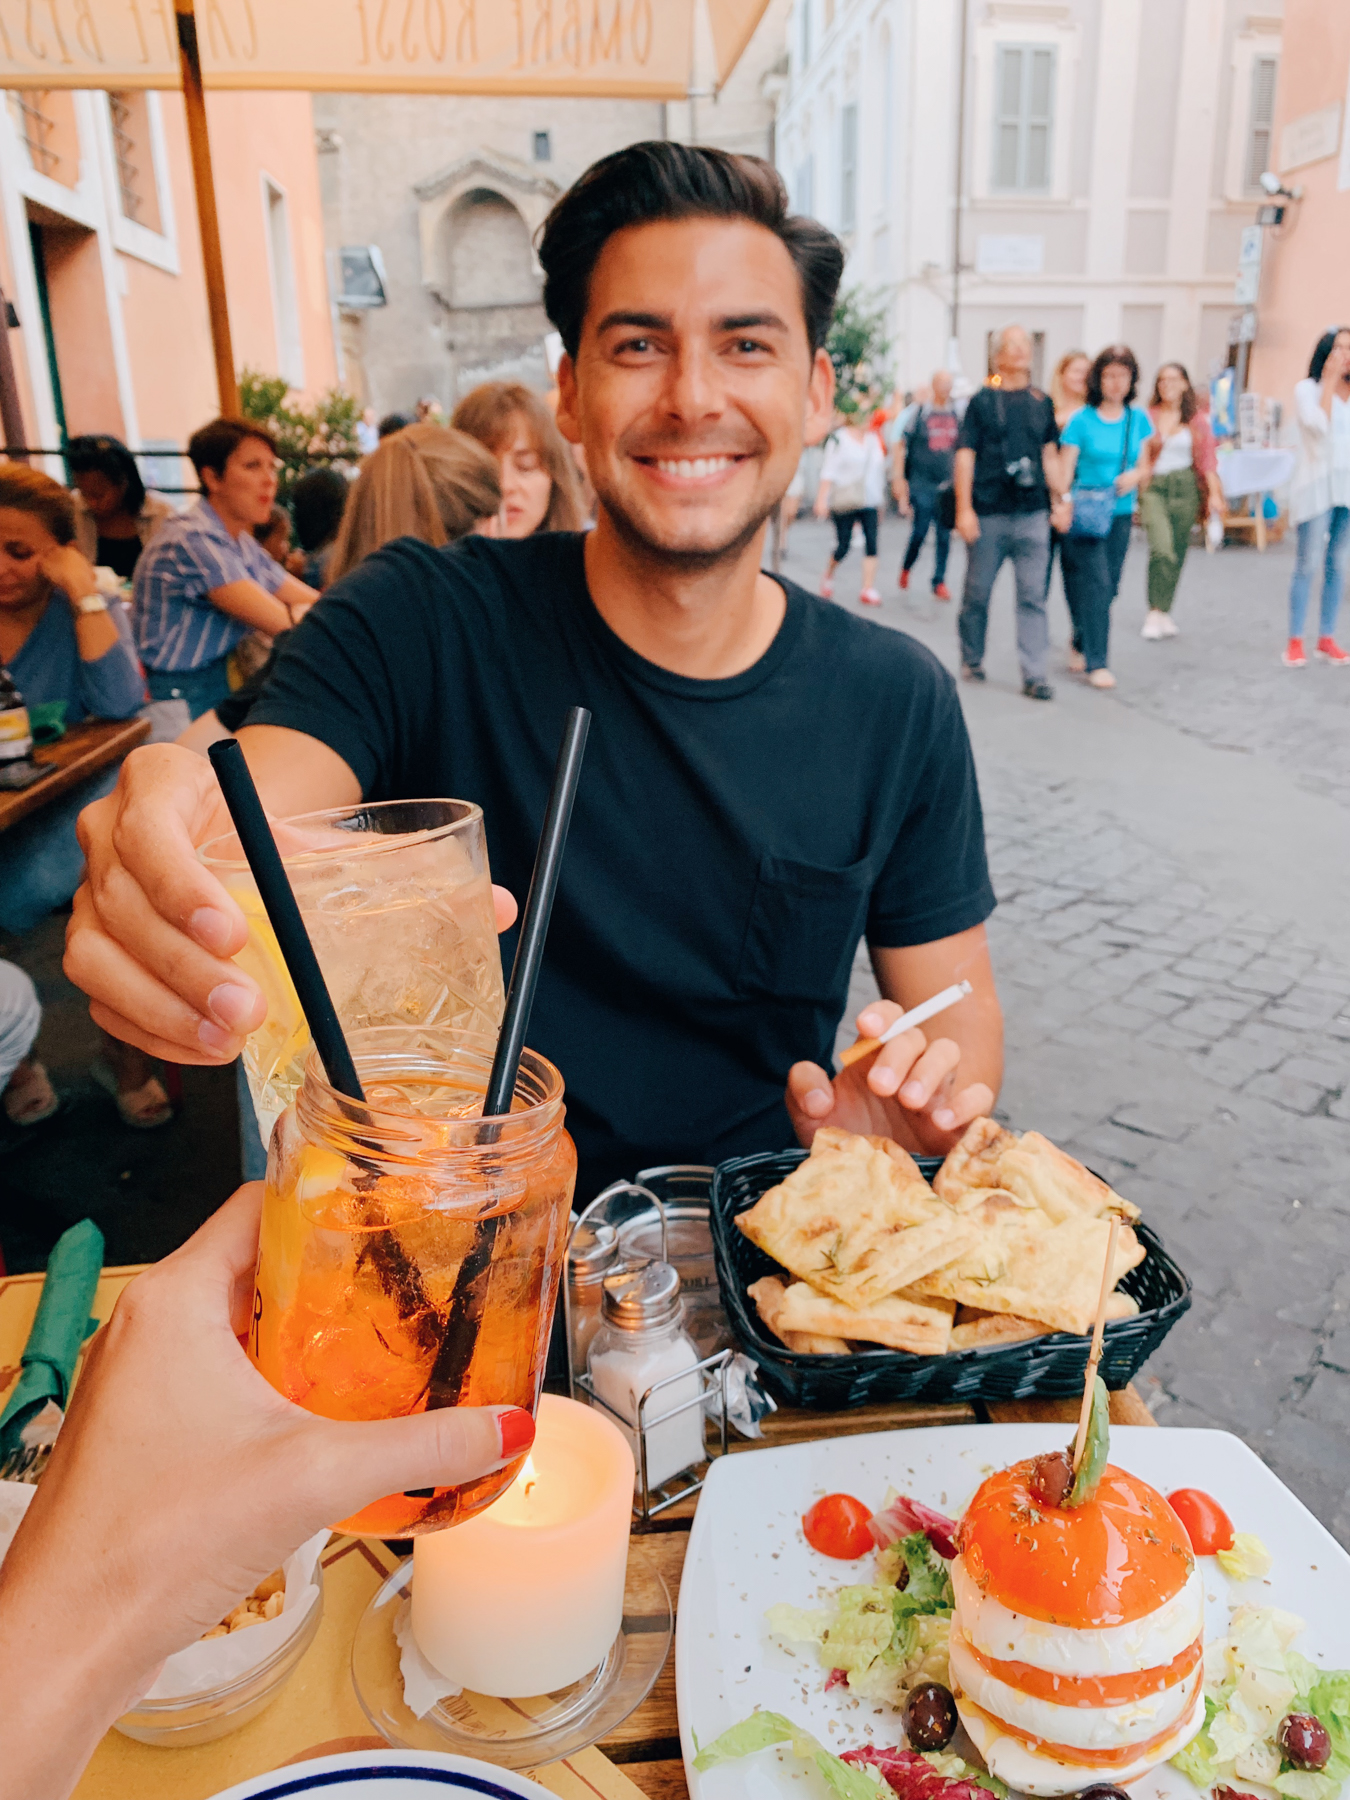 We got aperitivo's at Ombre Rosse in Trastevere and it was one the best evenings.